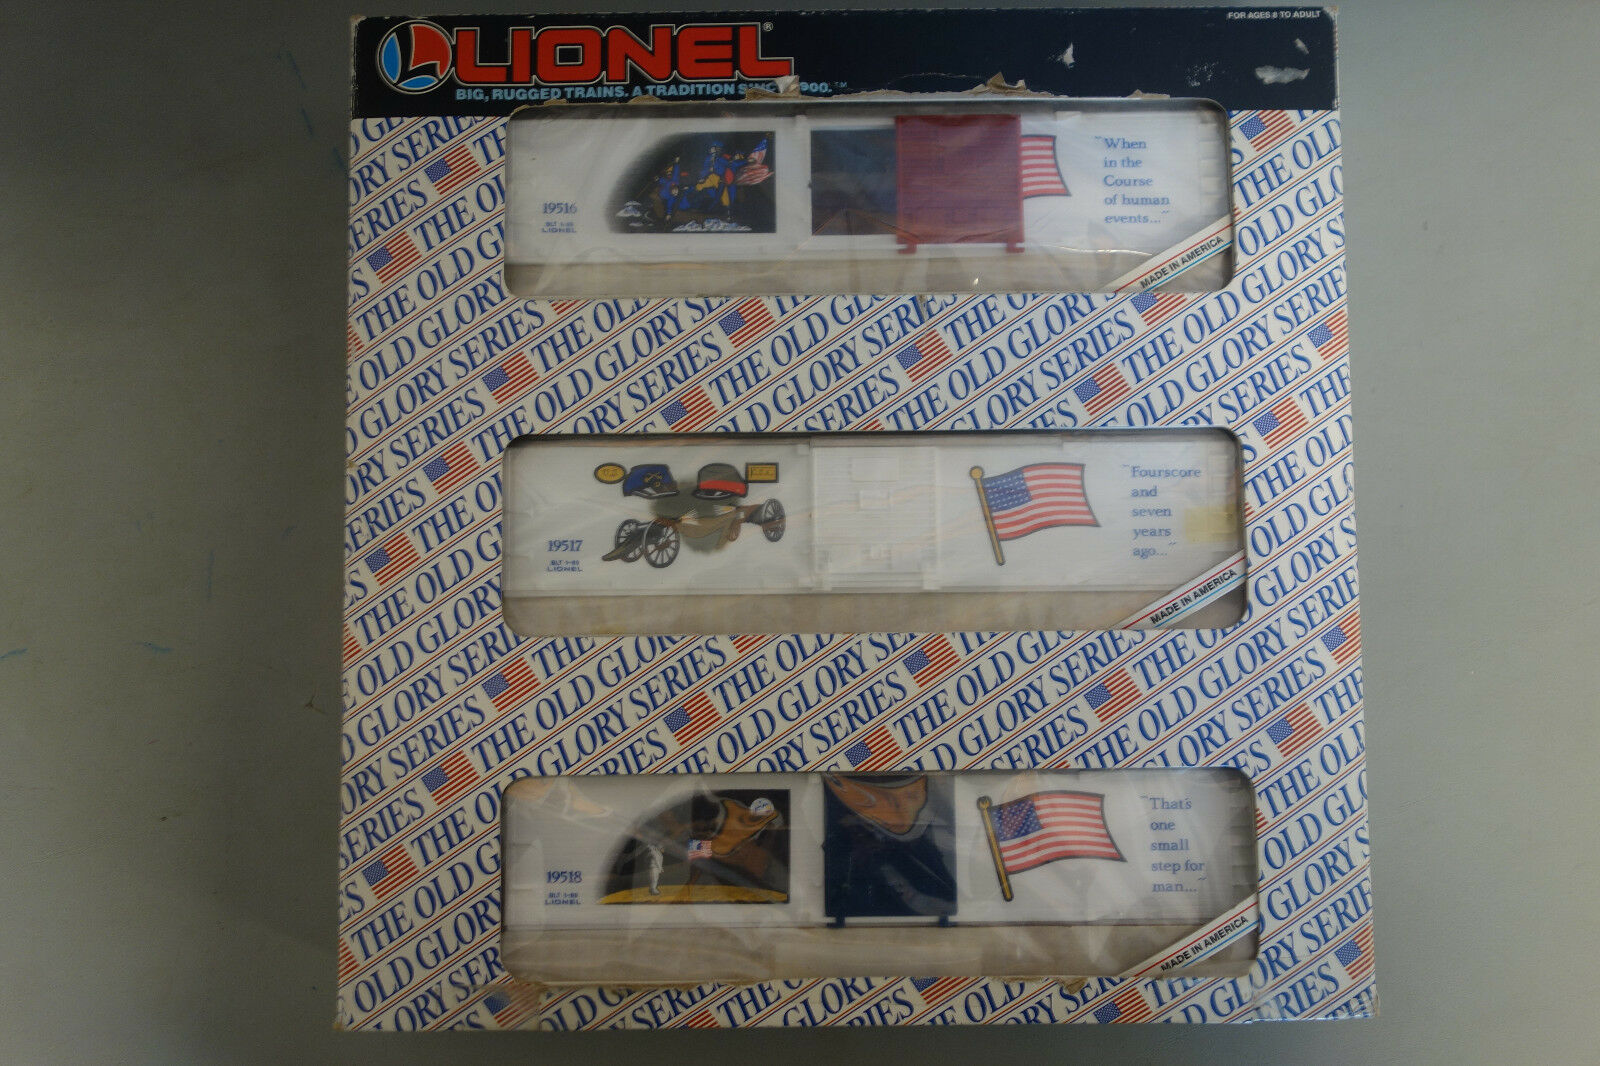 Lionel The Old Glory Series